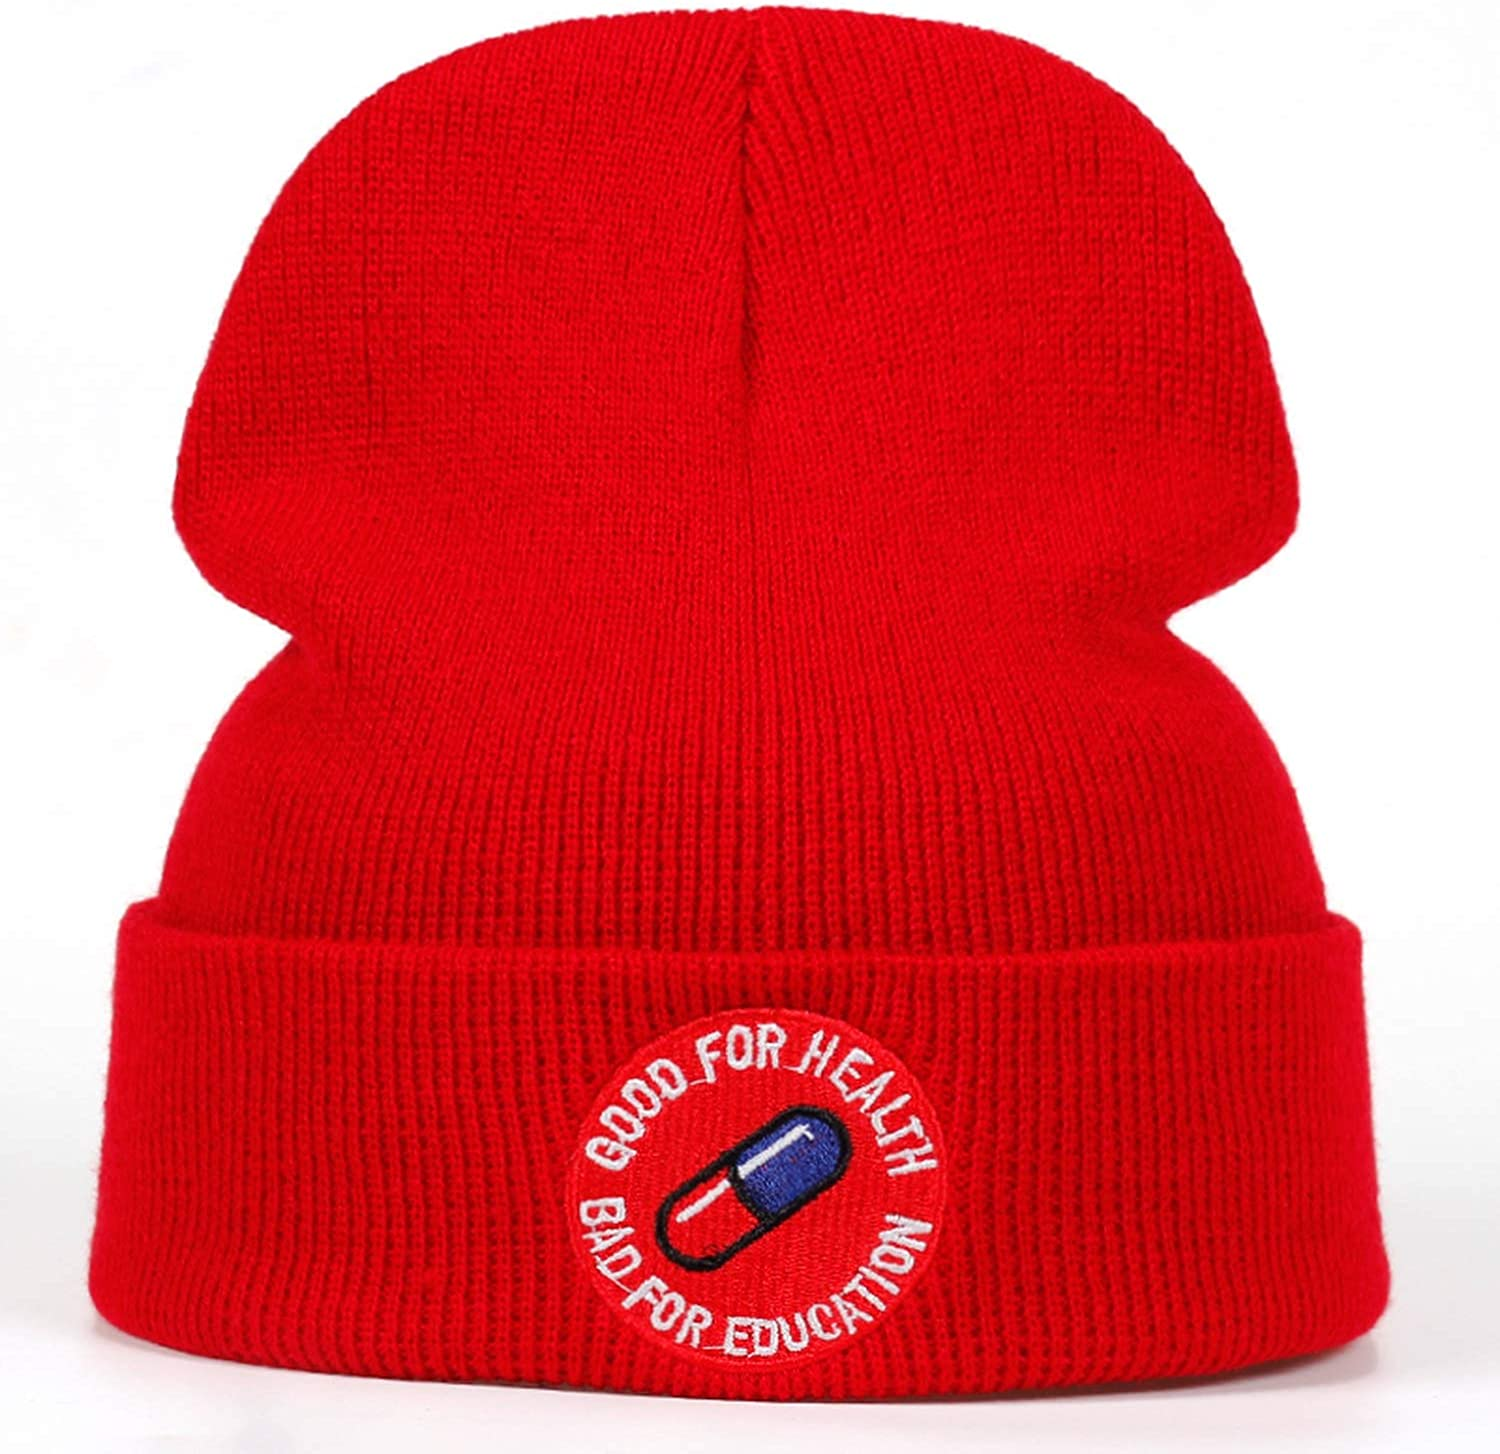 Moktasp Bad for Education Good for Health Casual Beanies Knitted Spring Summer Hat Hip-hop Skullies Hat